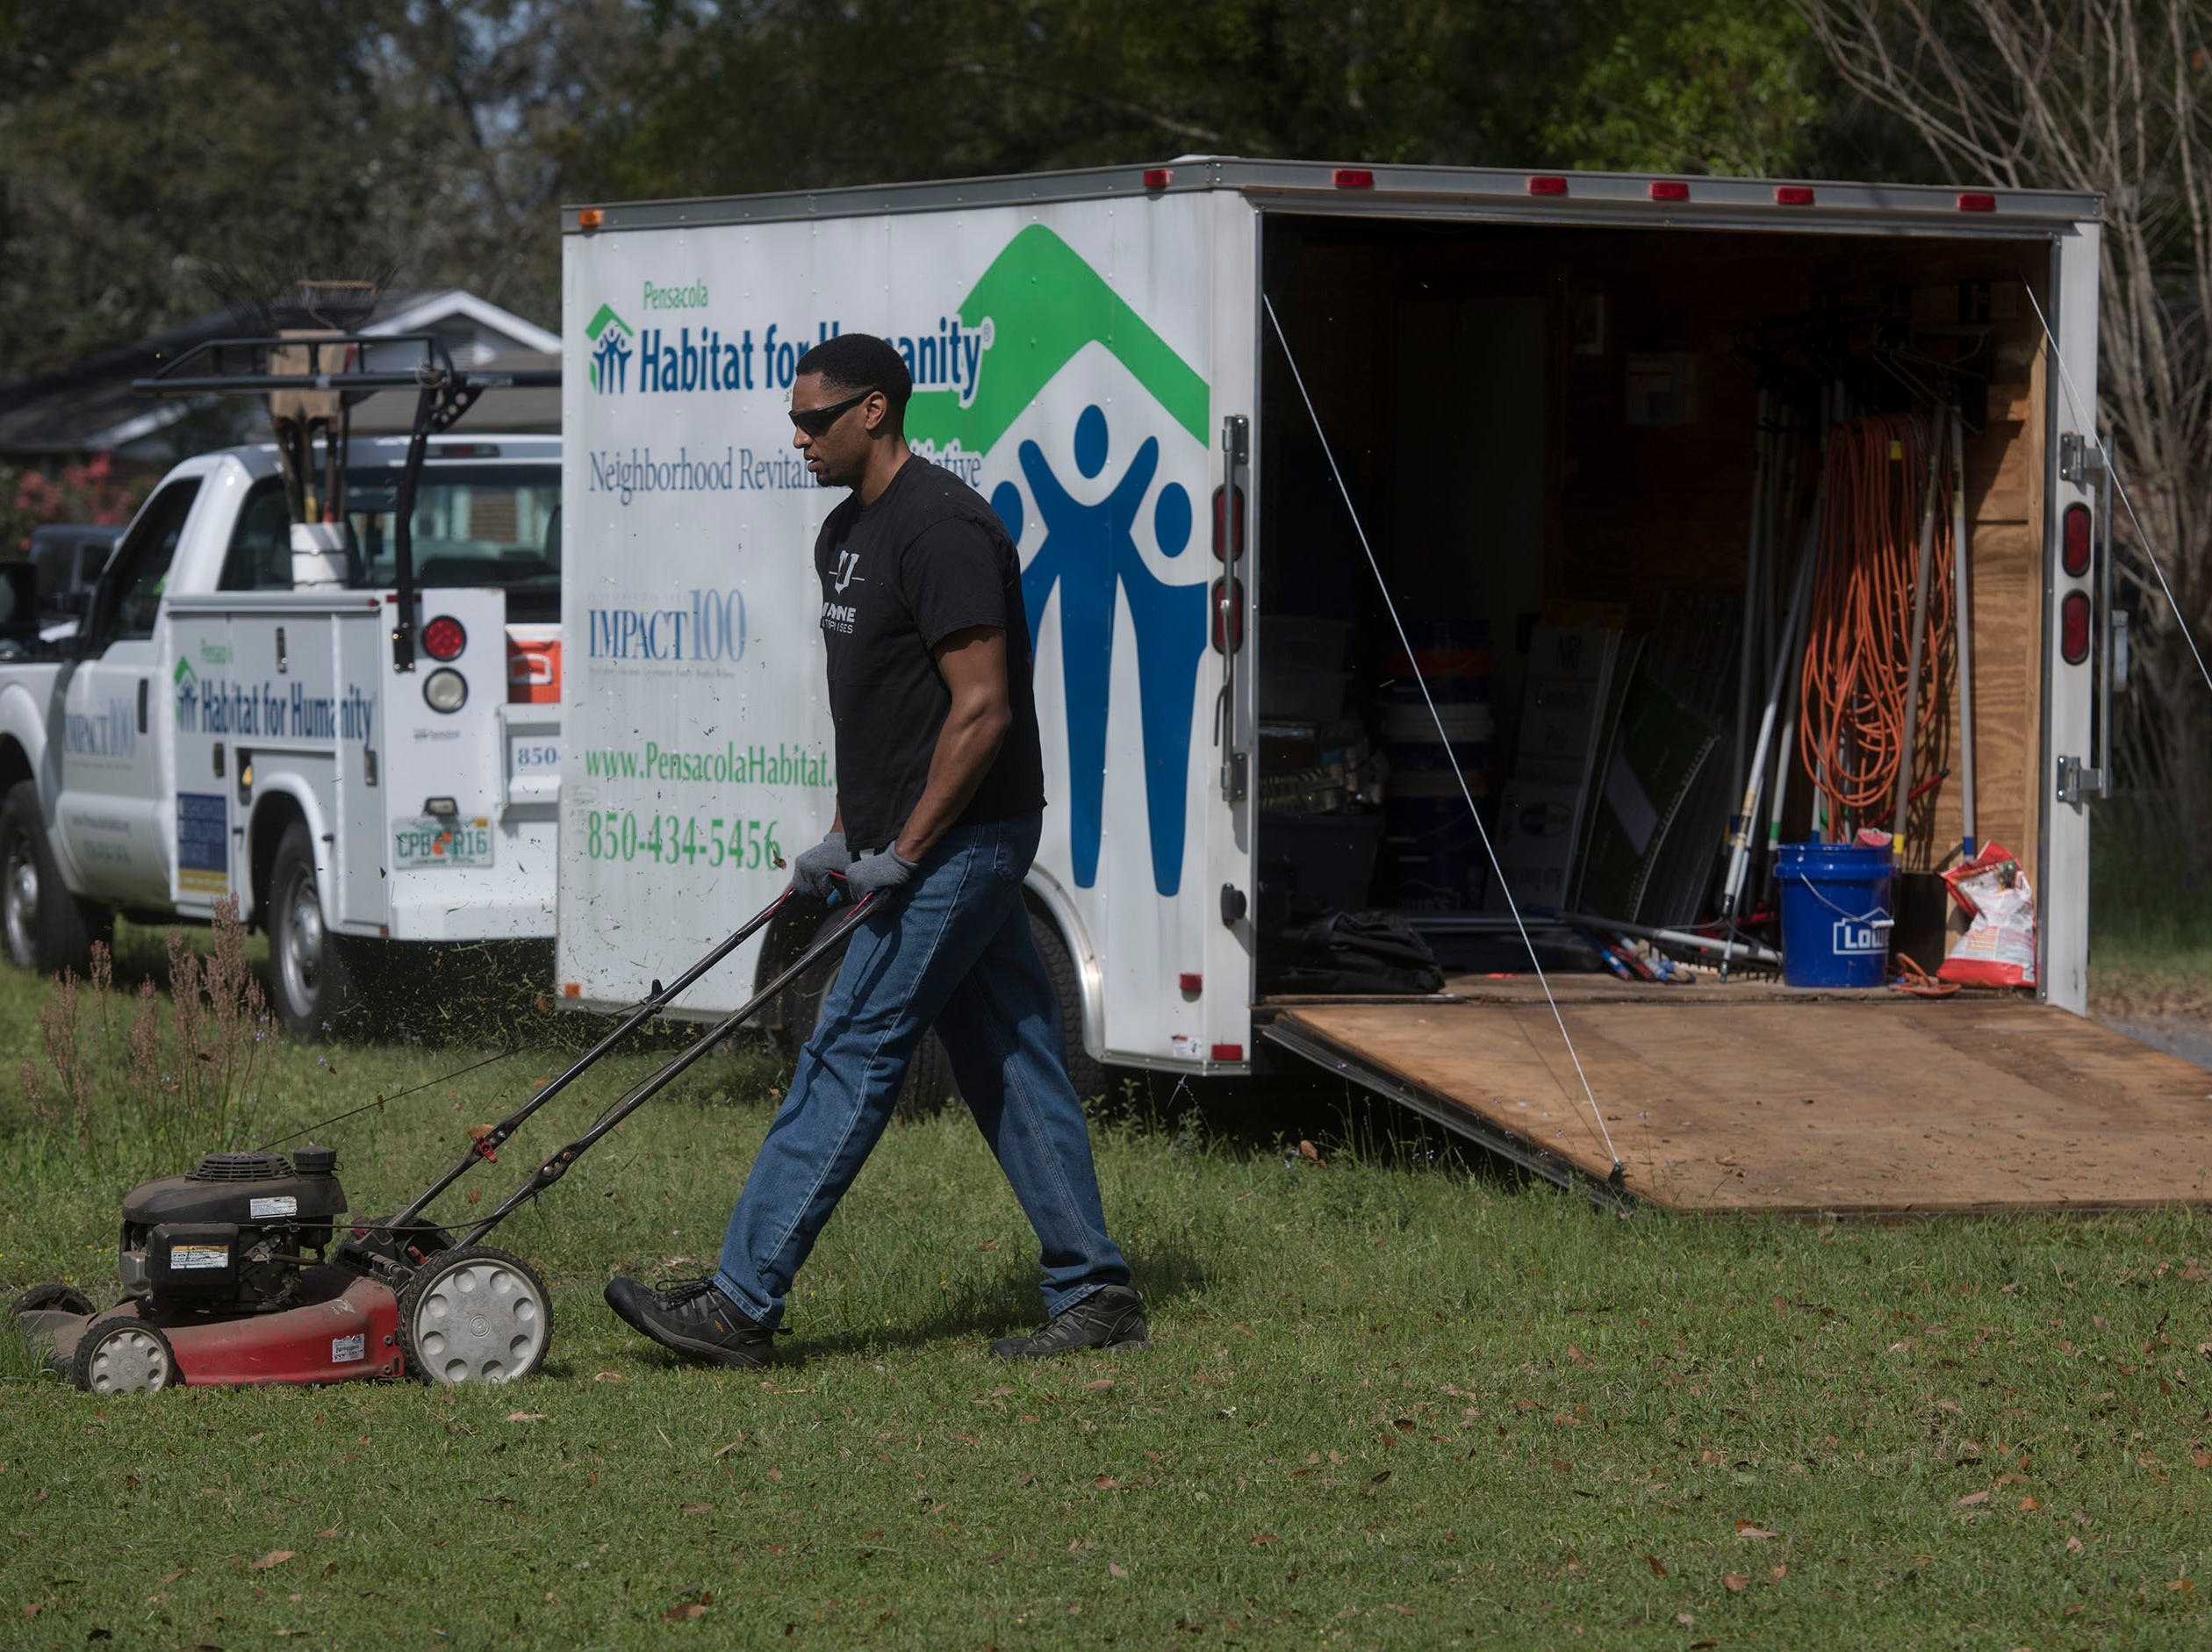 Habitat for Humanity of Pensacola, Keep Pensacola Beautiful, Call to Greatness,  the City of Pensacola and Escambia County joined forces to help revitalize the Brownsville area during the inaugural Rock the Block event on Tuesday, March 12, 2019.